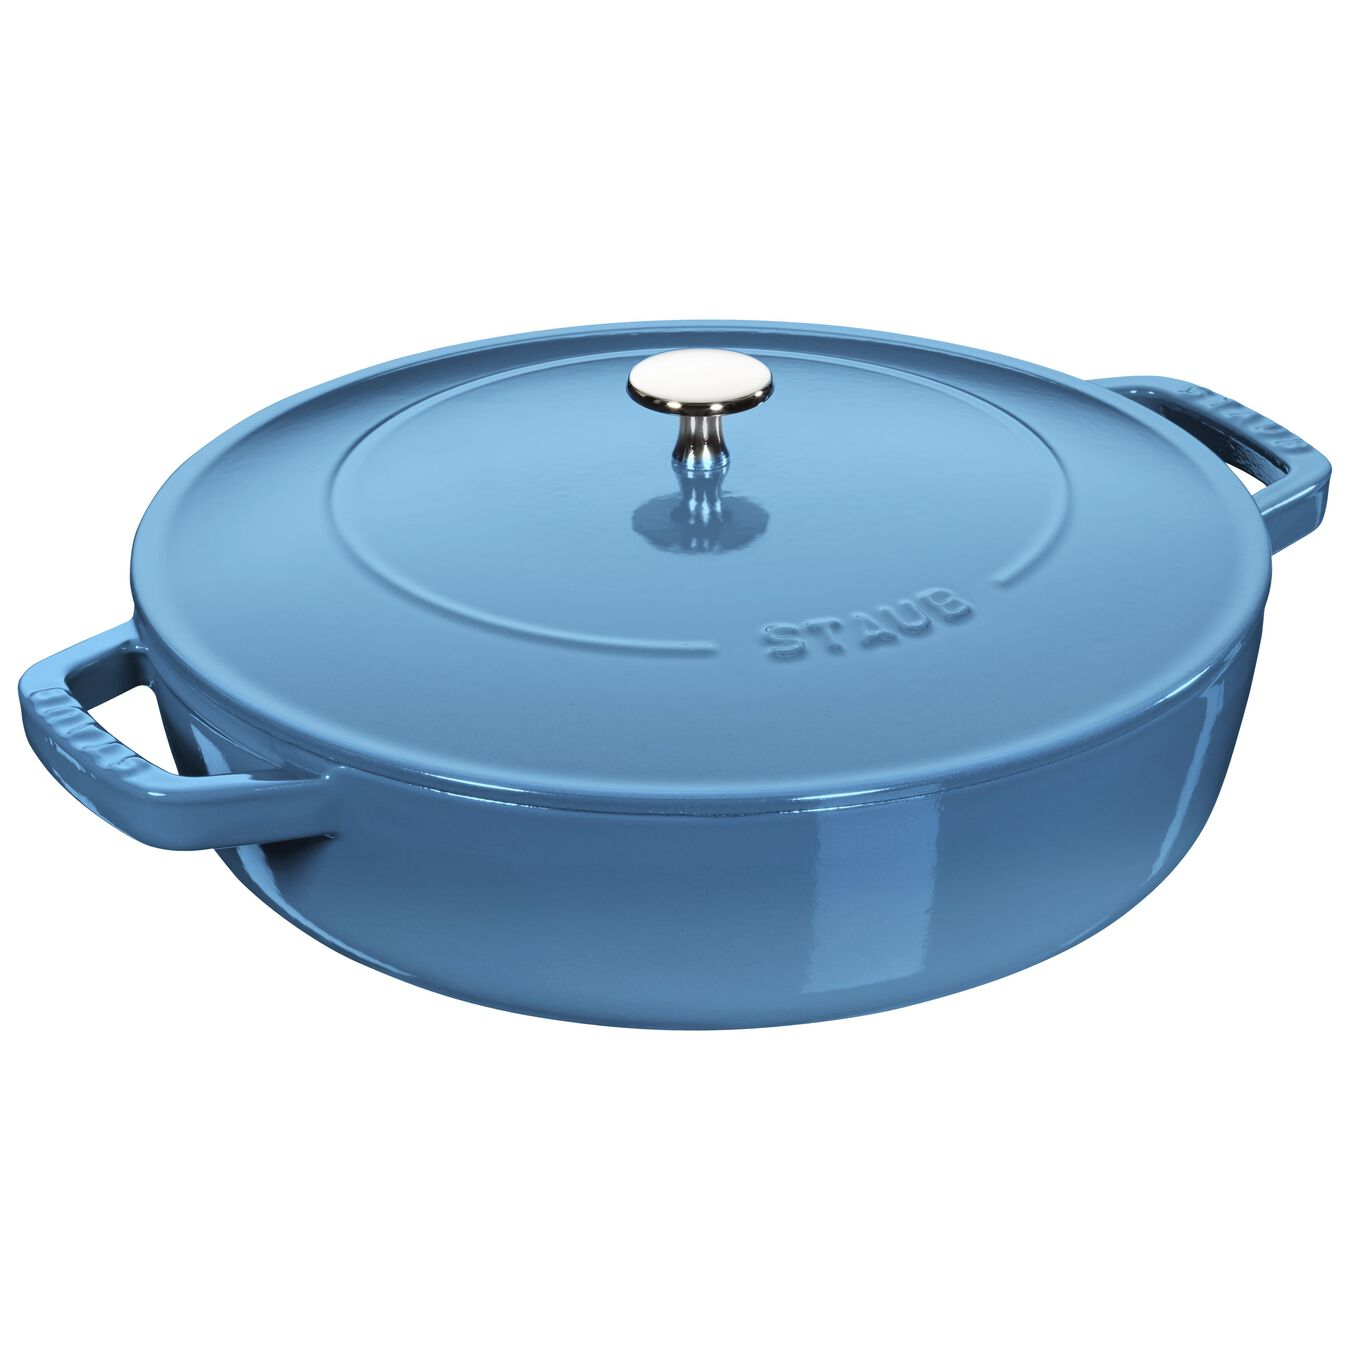 3.75 l Cast iron round Saute pan Chistera, ice-blue,,large 1